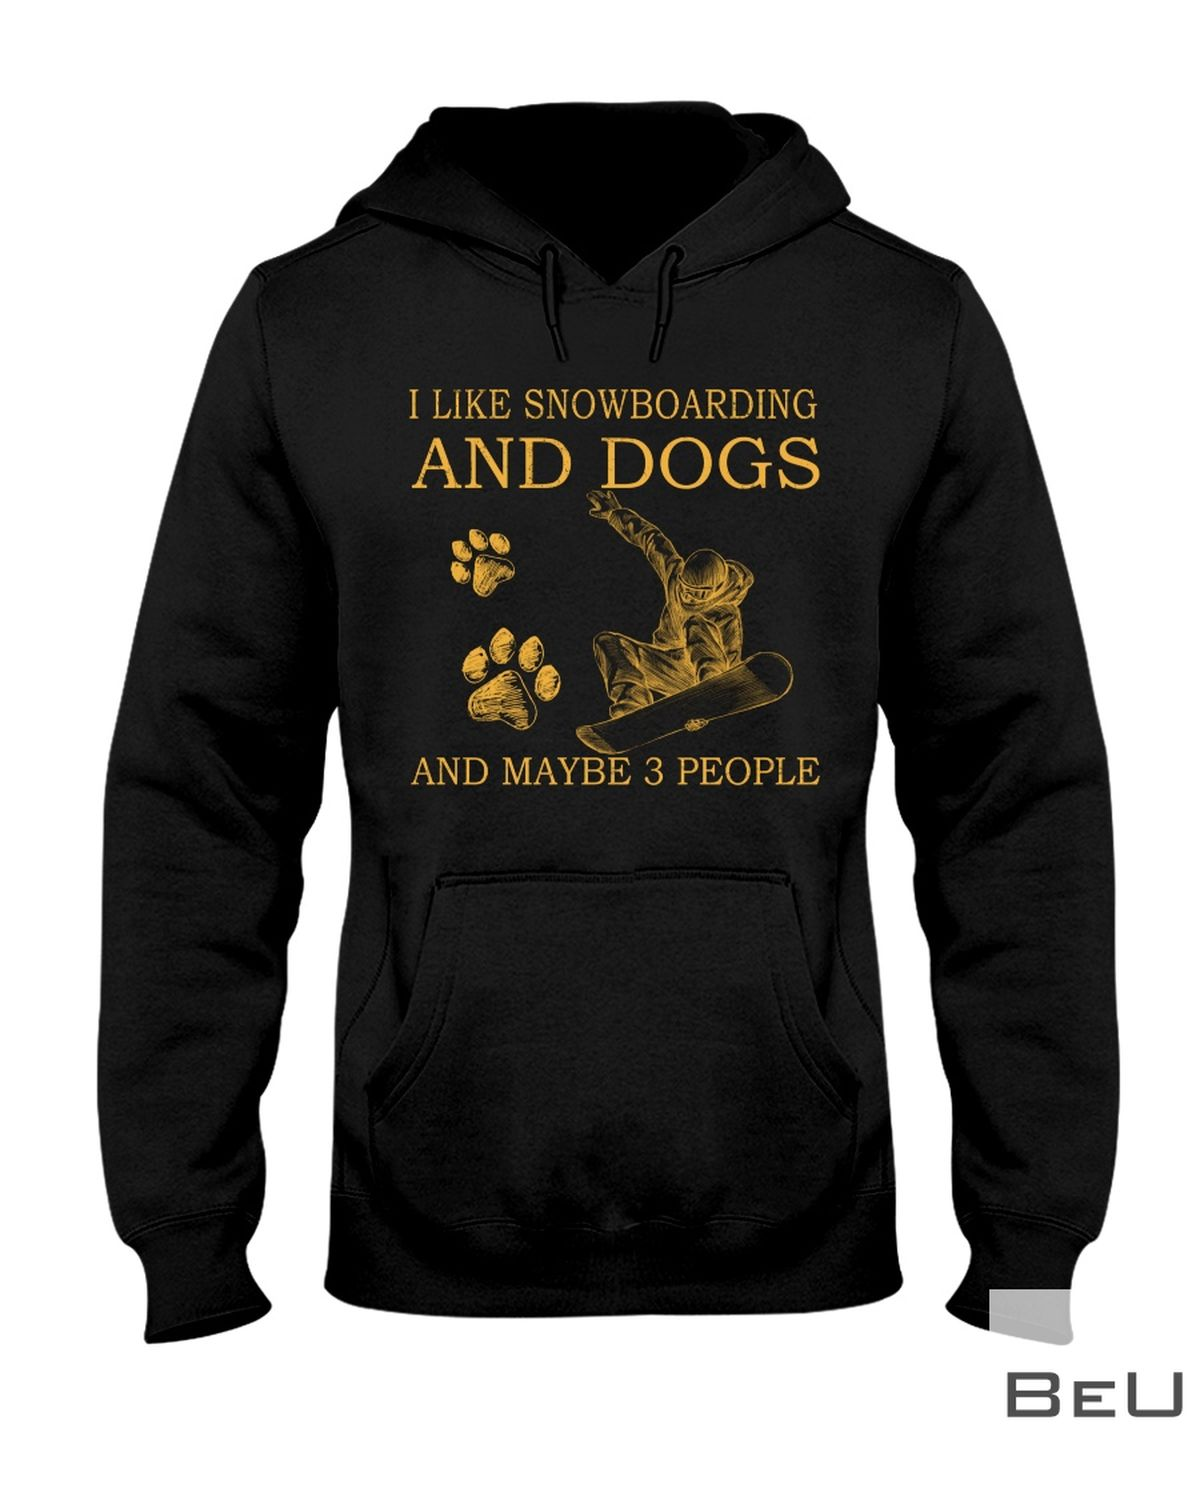 I Like Snowboarding And Dogs And Maybe 3 People Shirt x